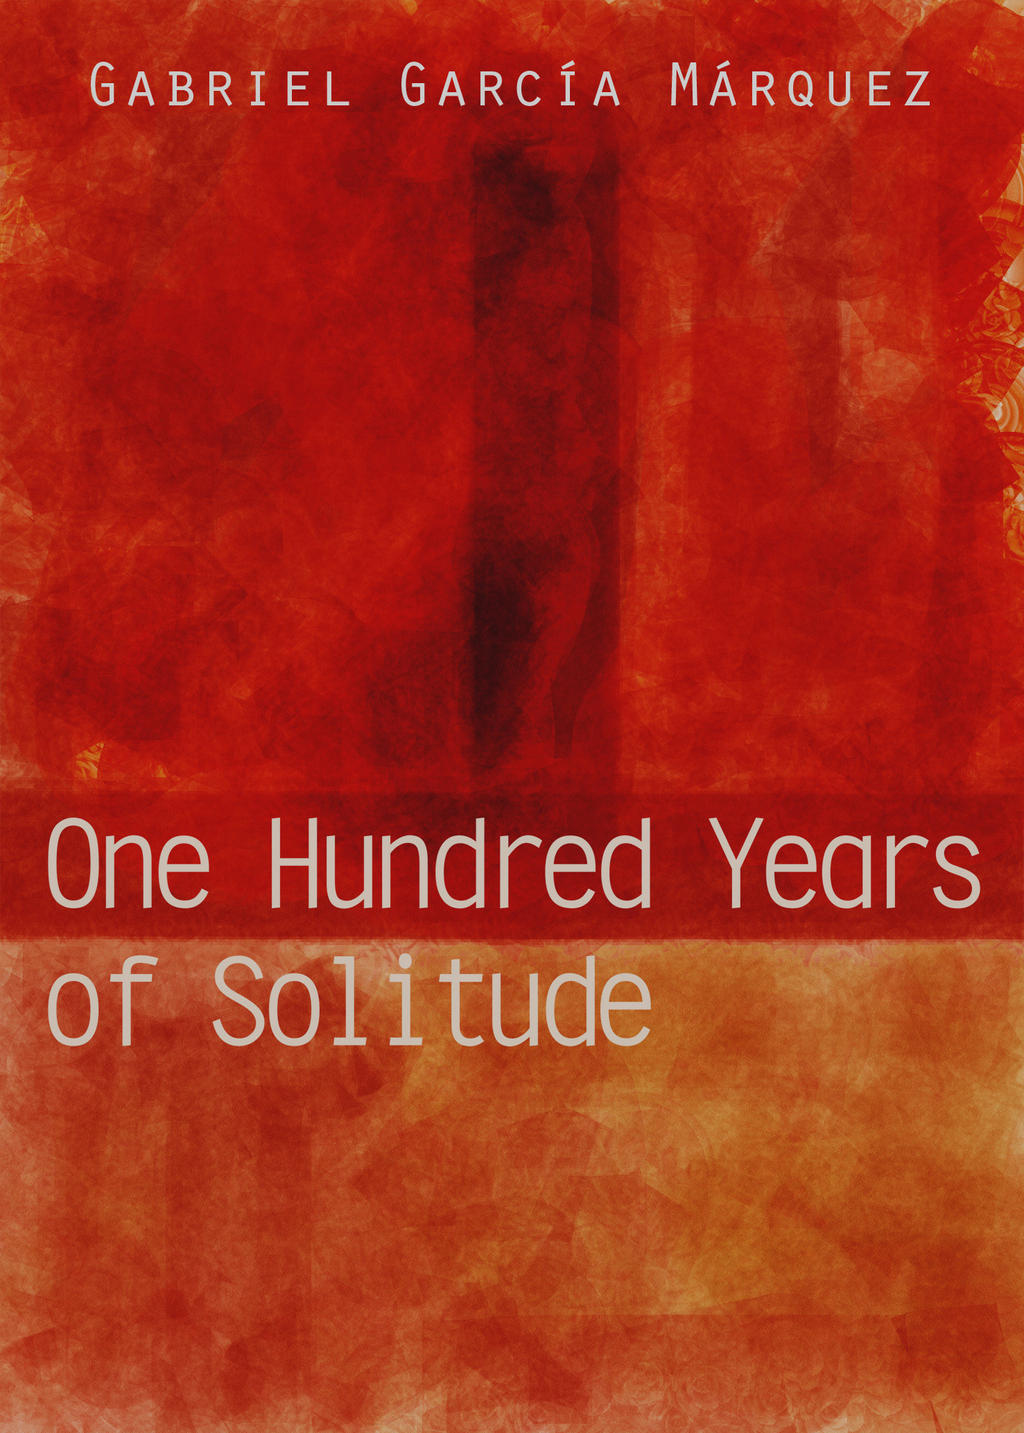 one hundred years of solitude a novel One hundred years of solitude (1967 book) book recommendations about india books about india novel recommendations recommendations novels book recommendations books india what is your review of one hundred years of solitude (1967 book) update cancel answer wiki  how and why should one read one hundred years of solitude.